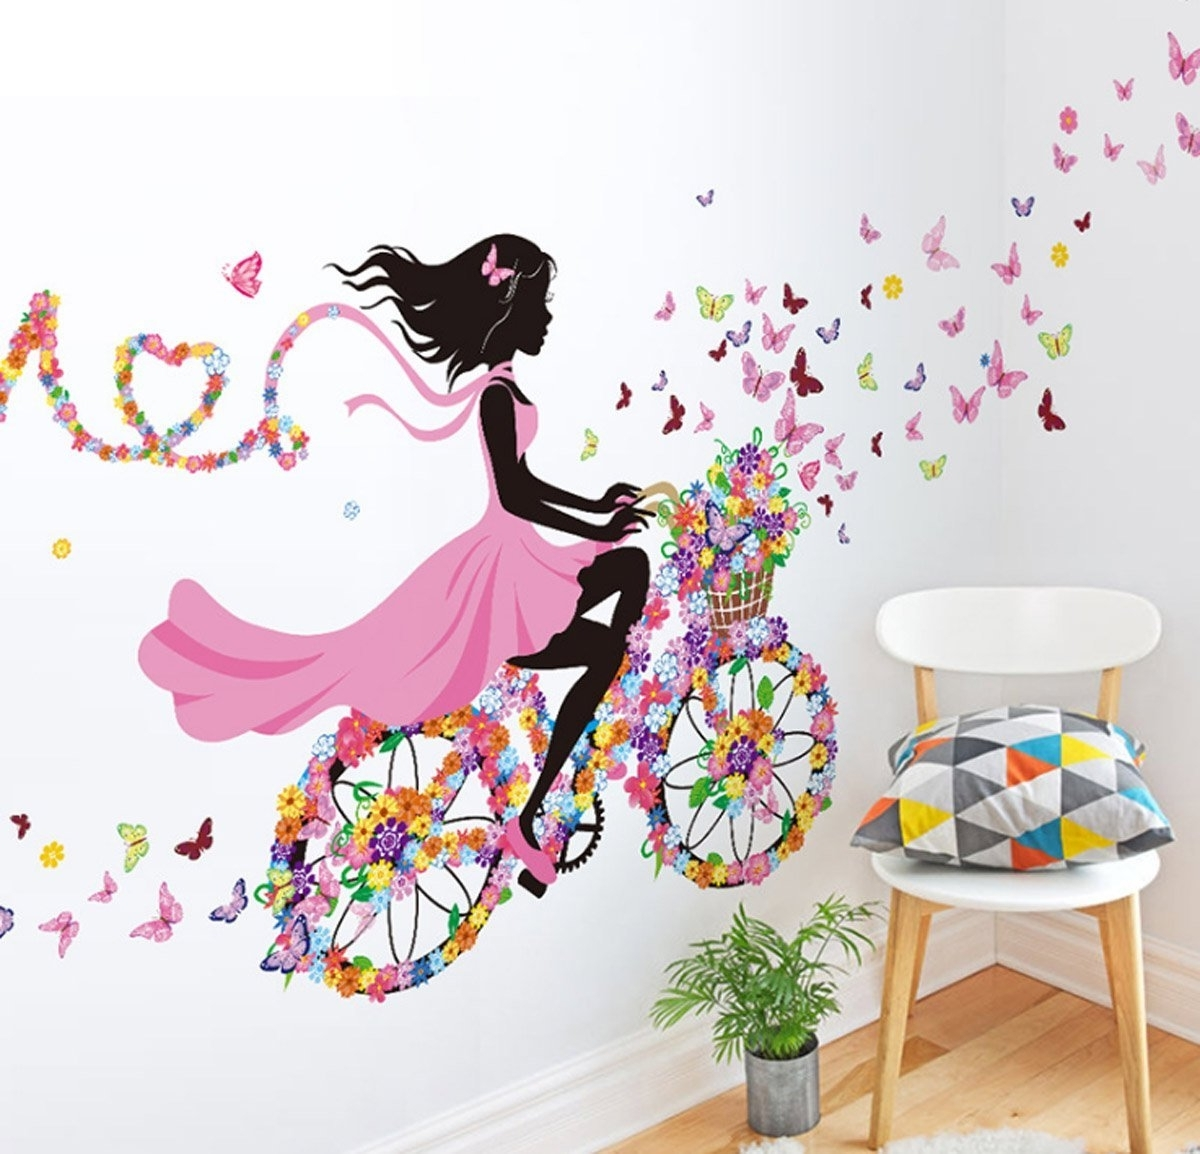 Current 3D Removable Butterfly Wall Art Stickers Intended For Amazon: Mzy Llc (Tm) Owl Zebra Lion Tree Wall Stickers Home (View 5 of 15)